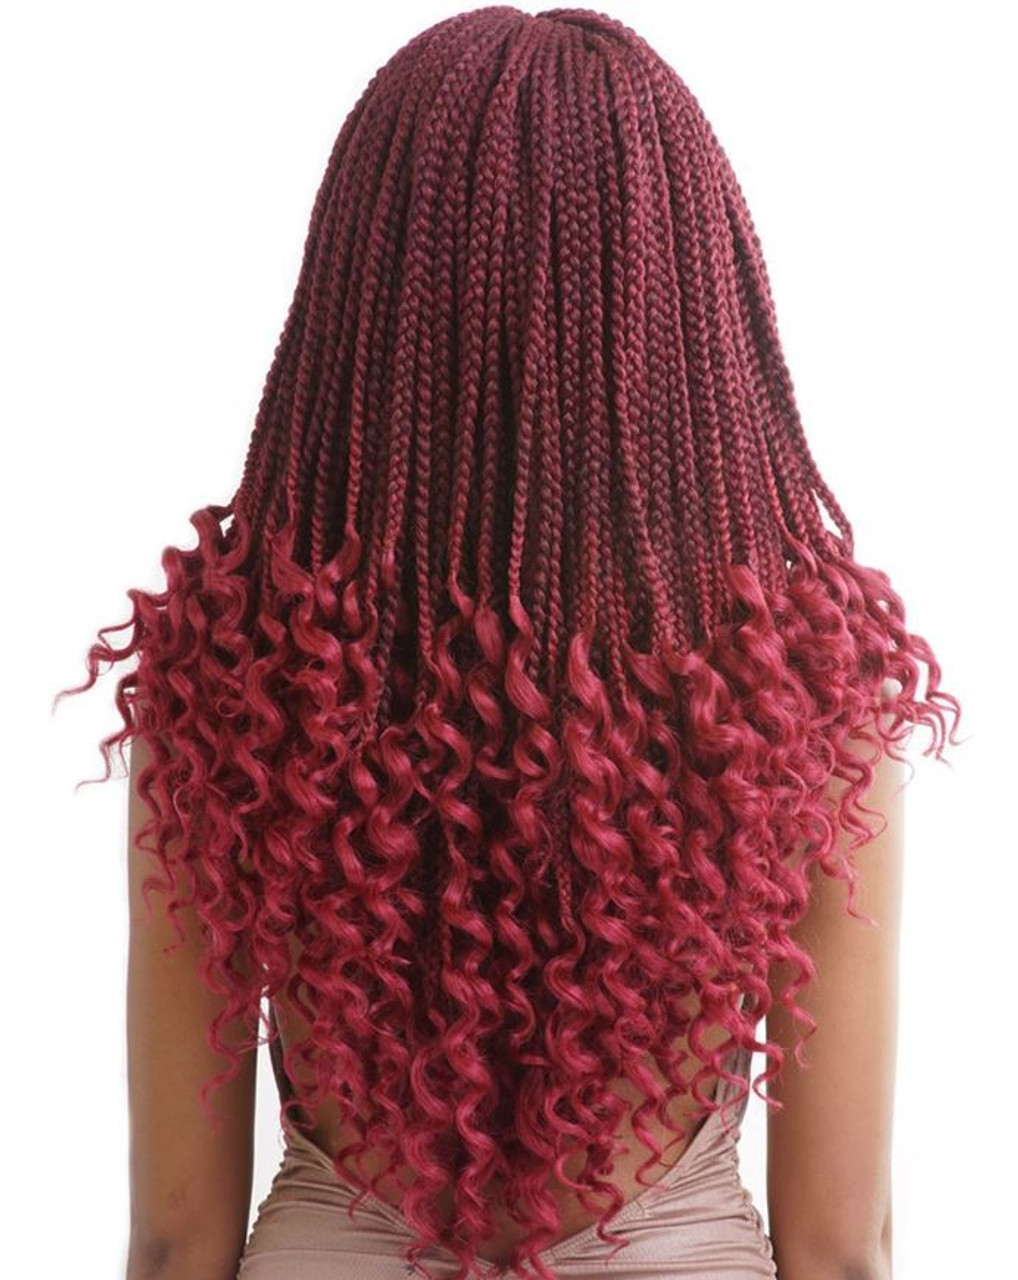 Crochet Box Braids Pre Looped With Curly Spiral Ends